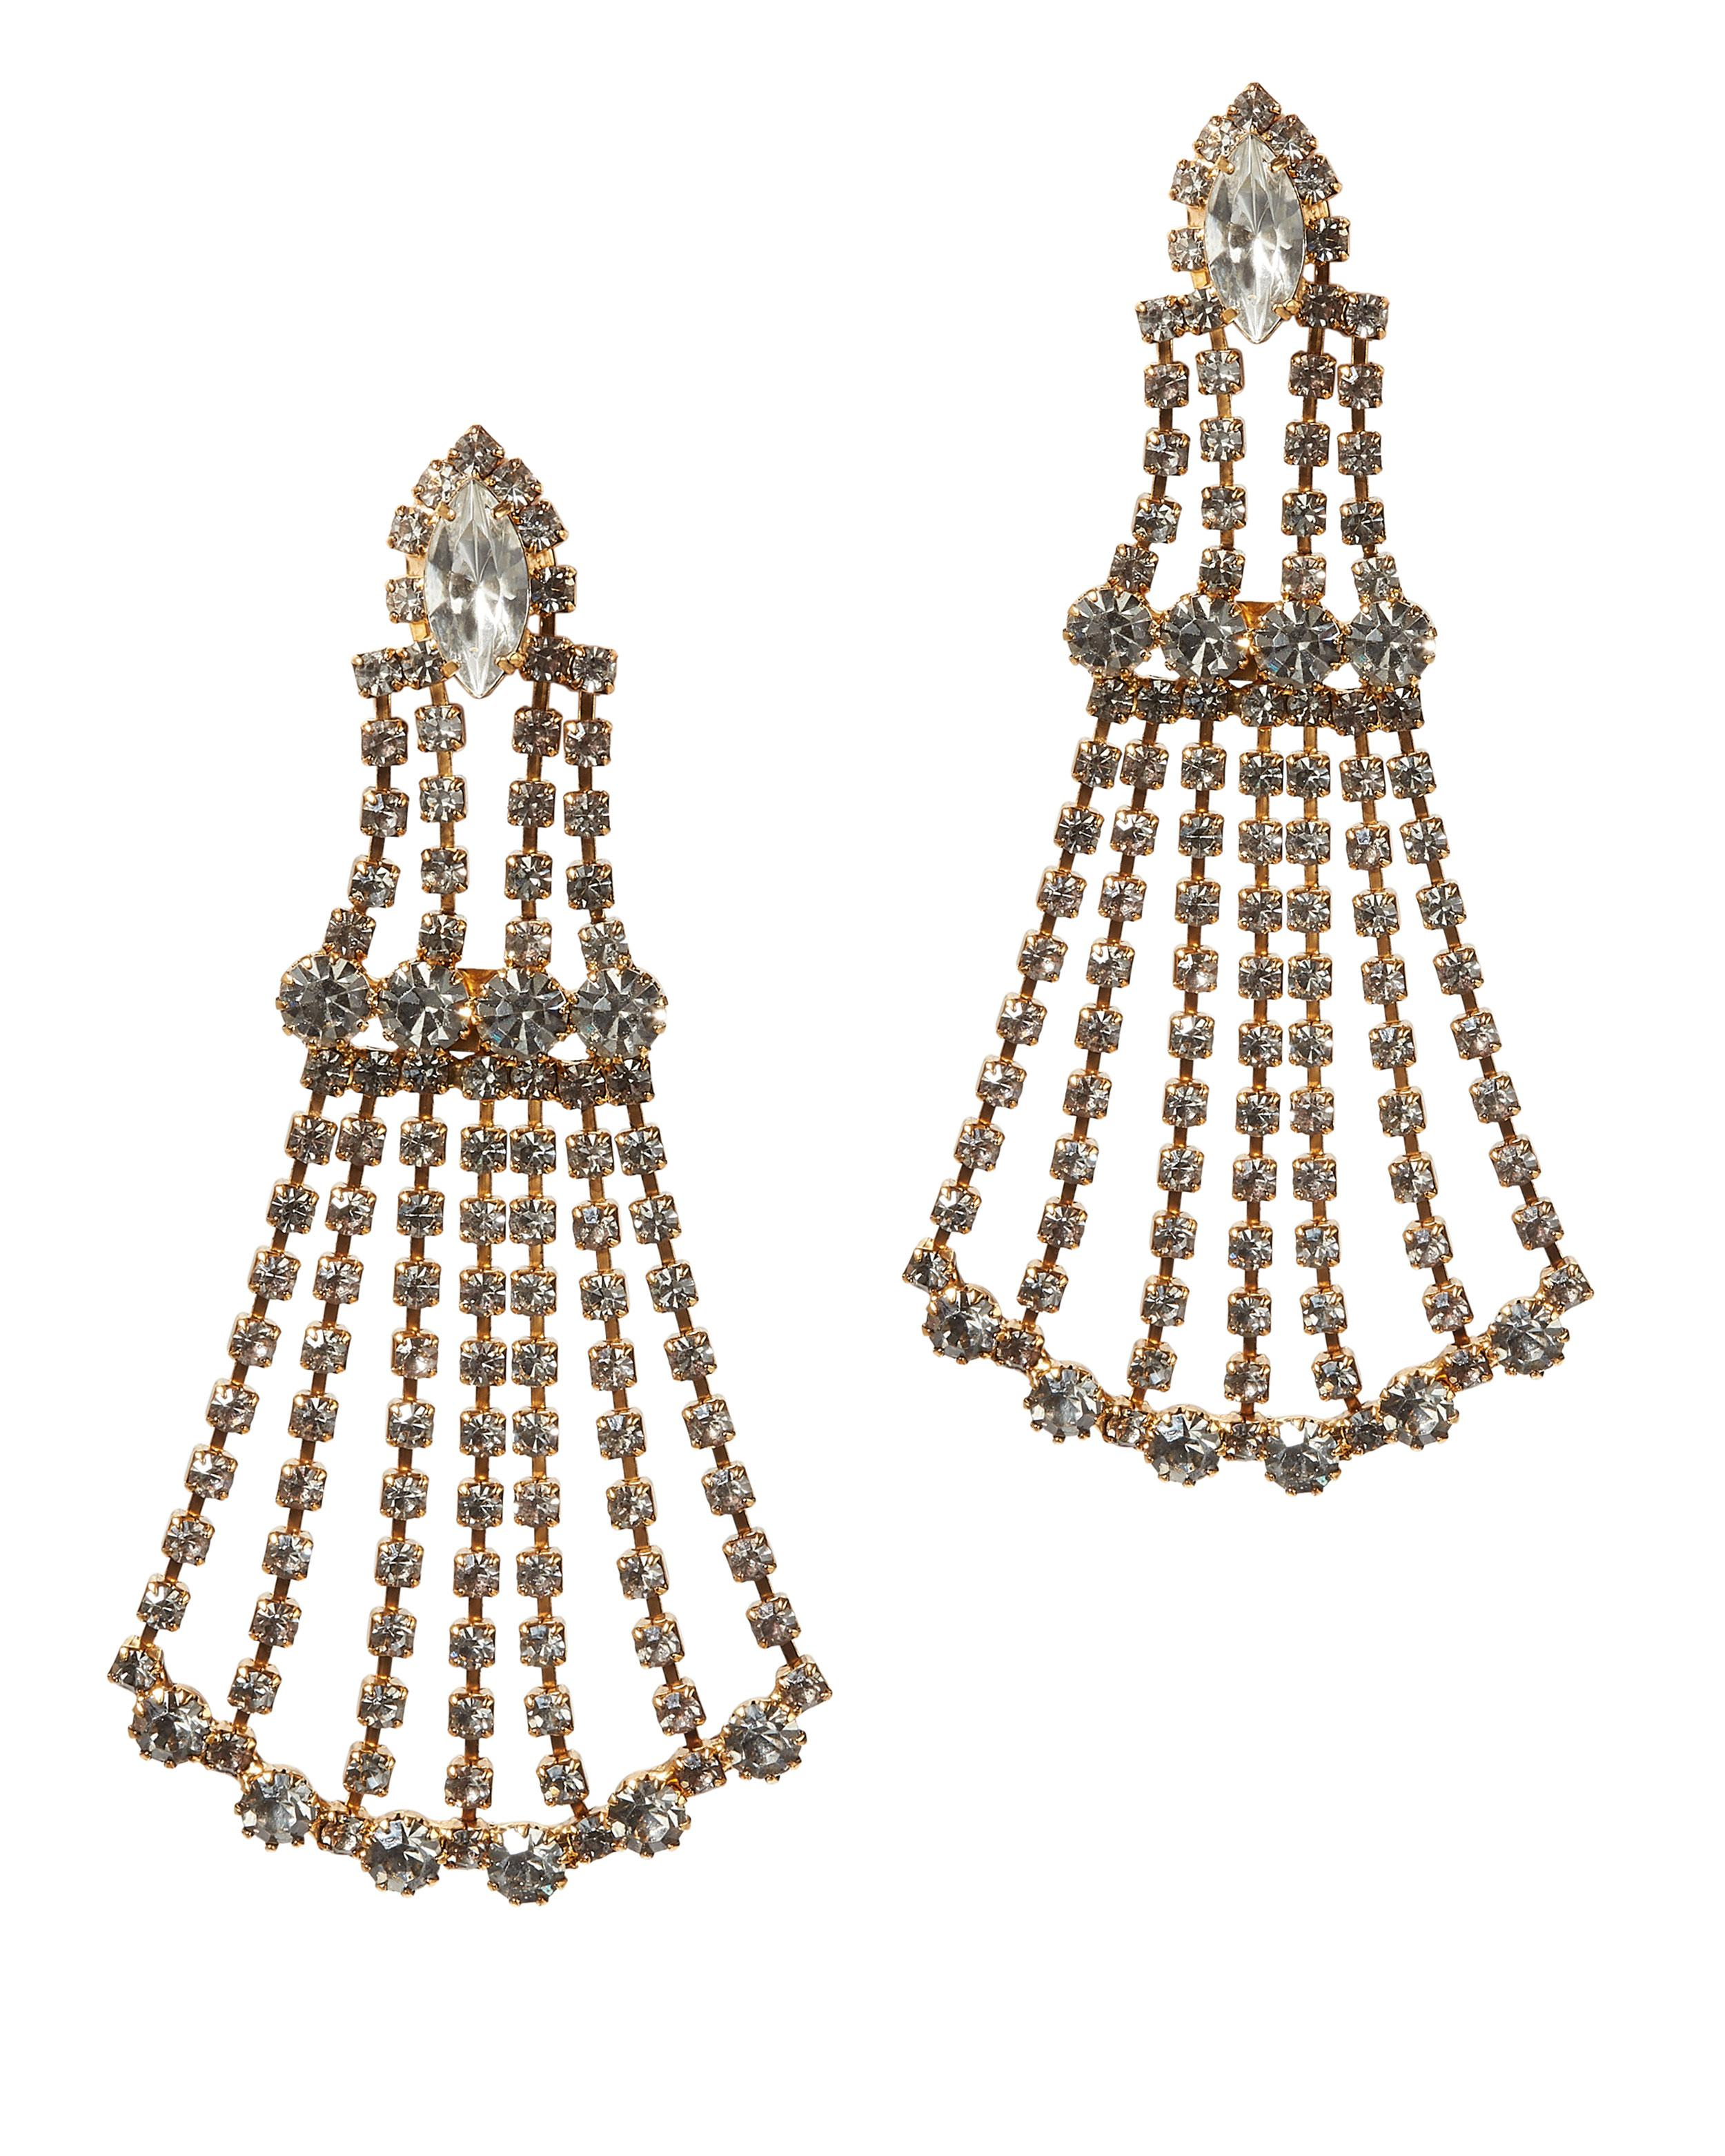 enlarged design filigree jewellery ideas gold chandelier earrings home